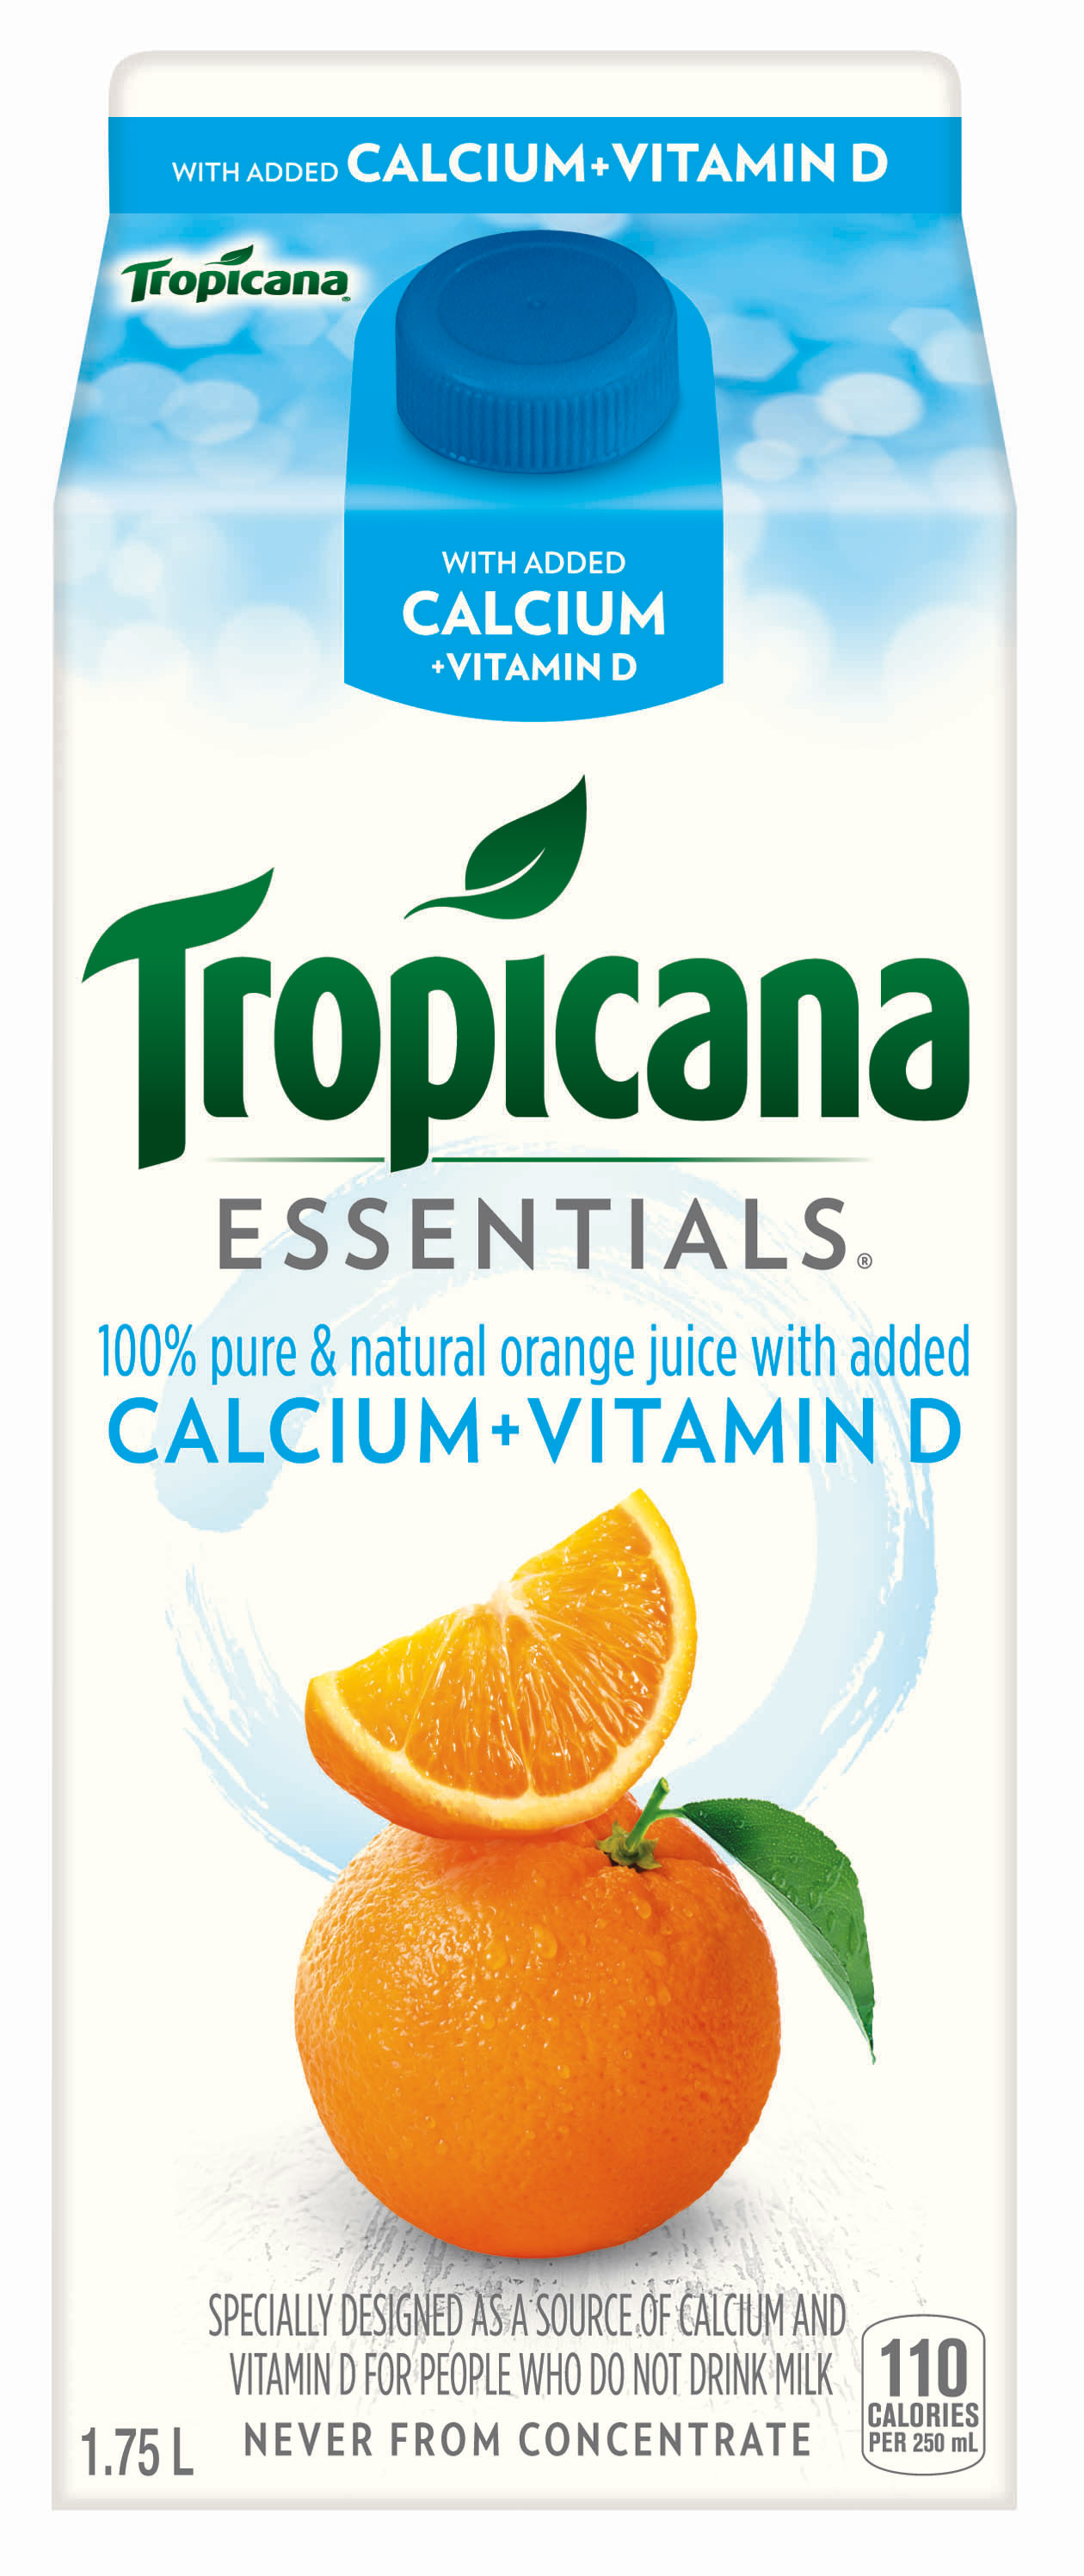 tropicana s orange juice value proposition Faq sugars & juice what it also adds real nutritional value to the diet with nutrients such as vitamin c and folate a 150ml serving of tropicana orange.